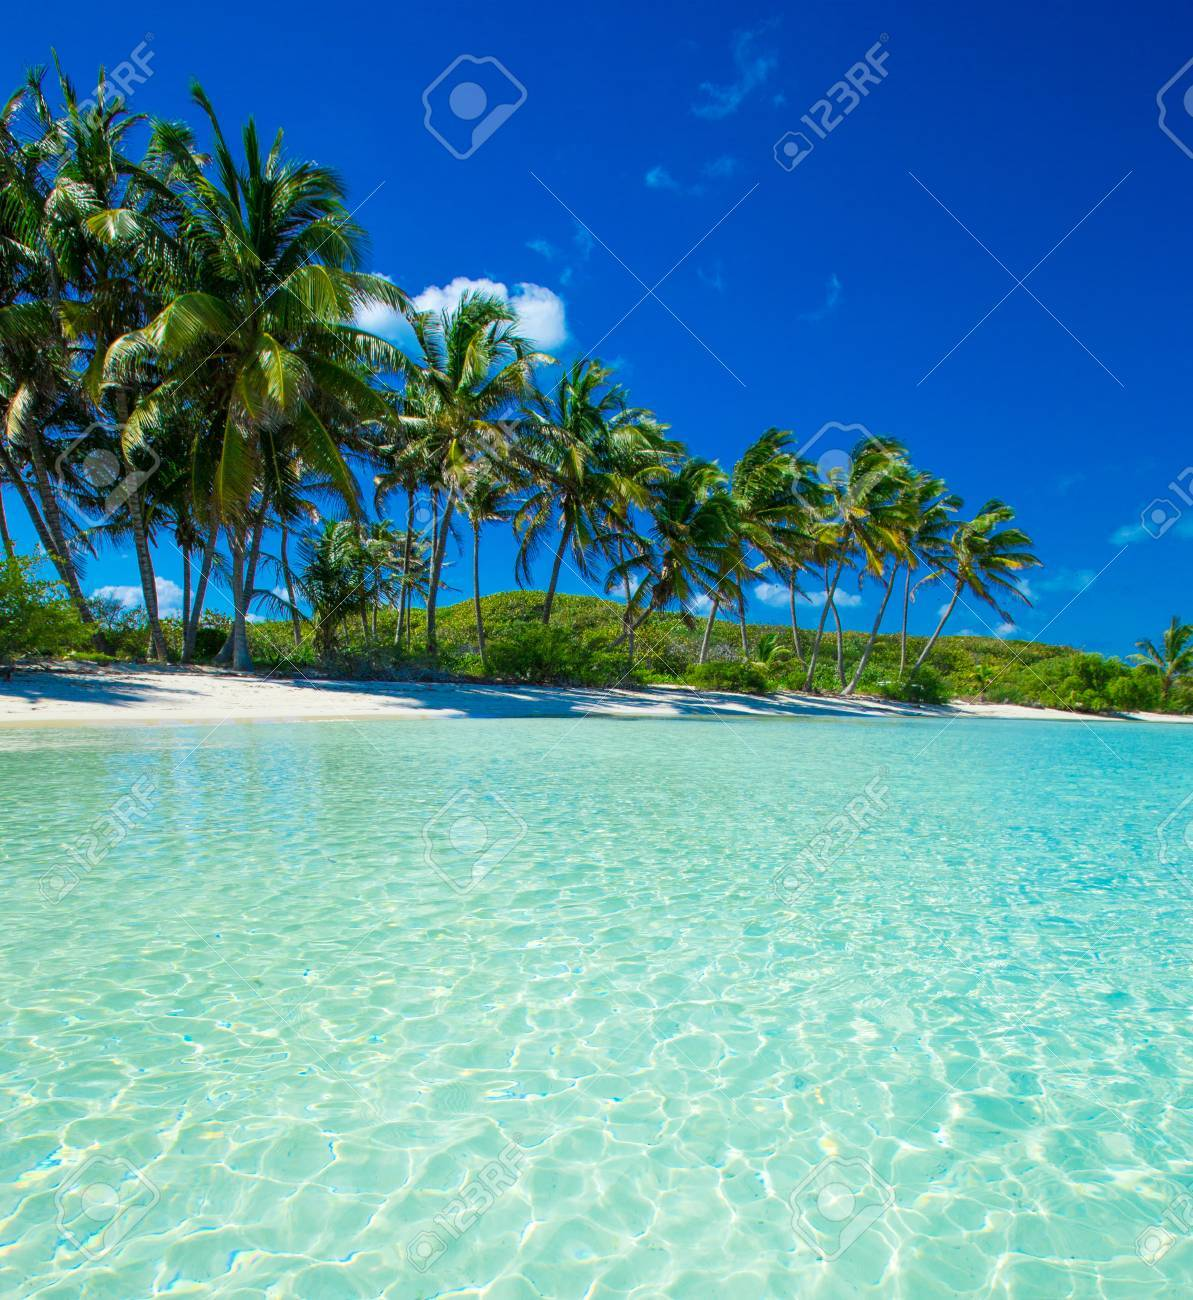 Palm and tropical beach Stock Photo - 39863363